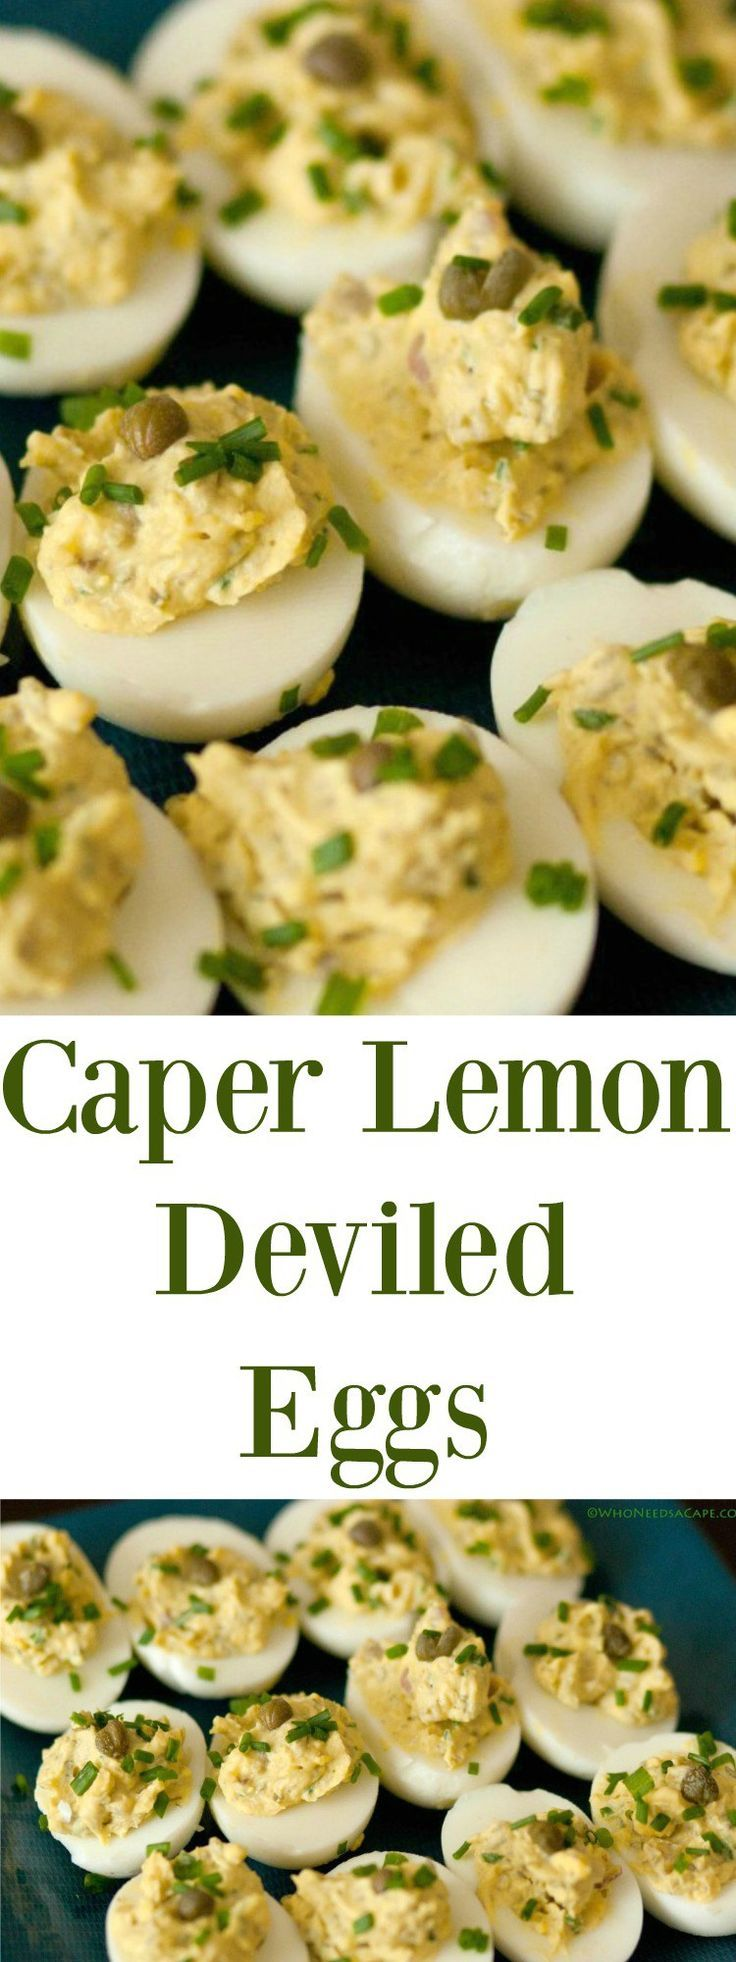 ... Deviled eggs on Pinterest | Classic deviled eggs, Easy deviled eggs